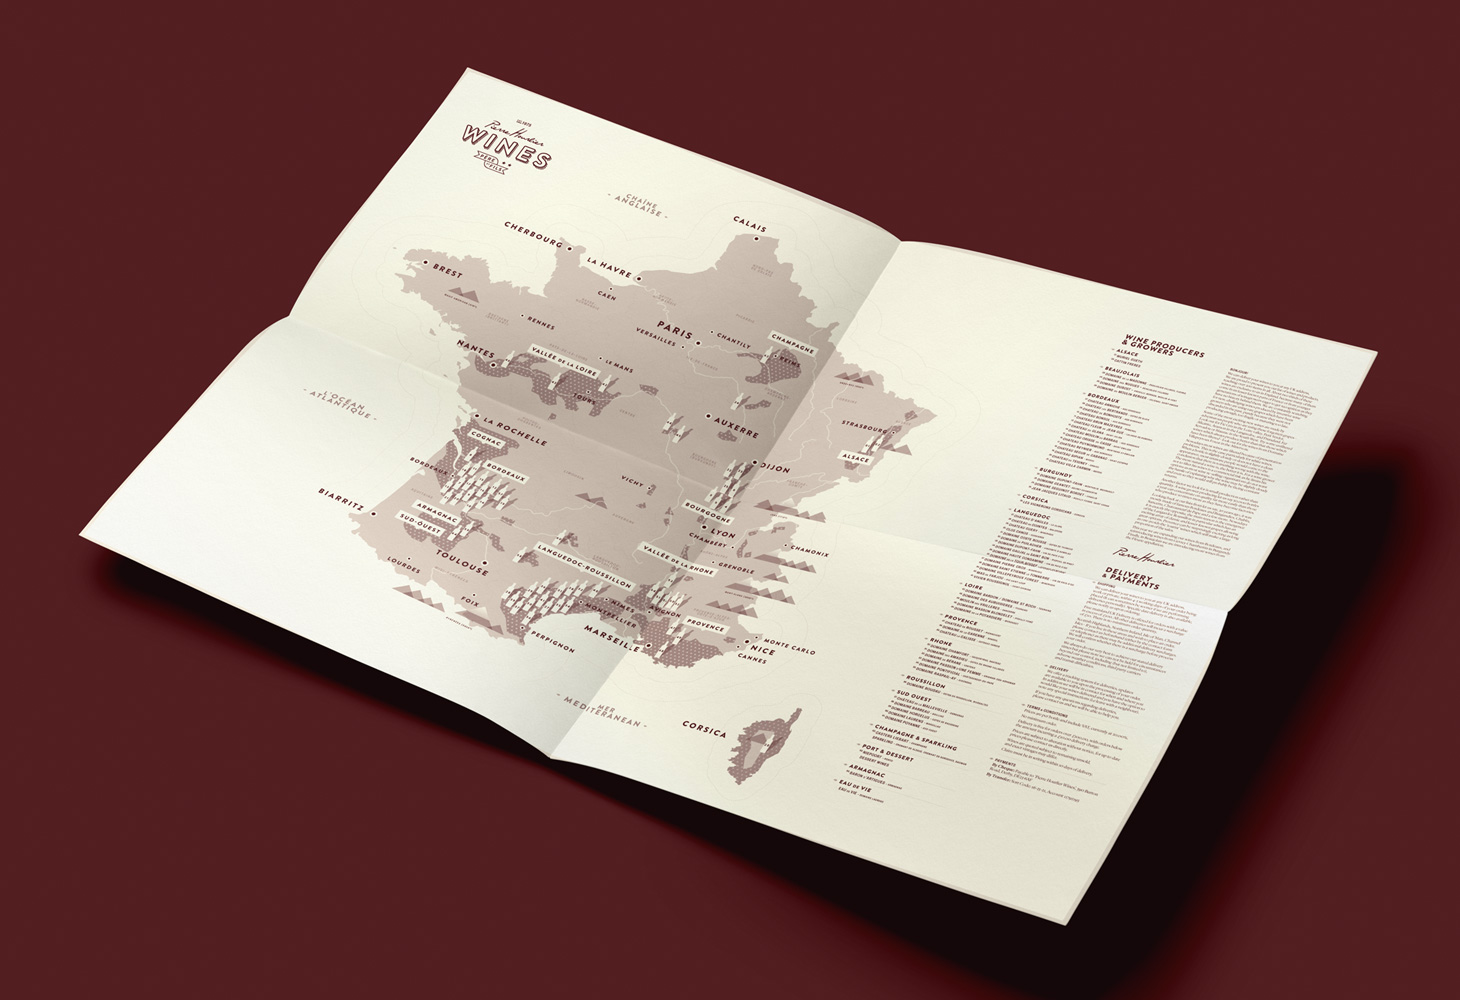 Hourlier Wines - Cartography - Overview Map